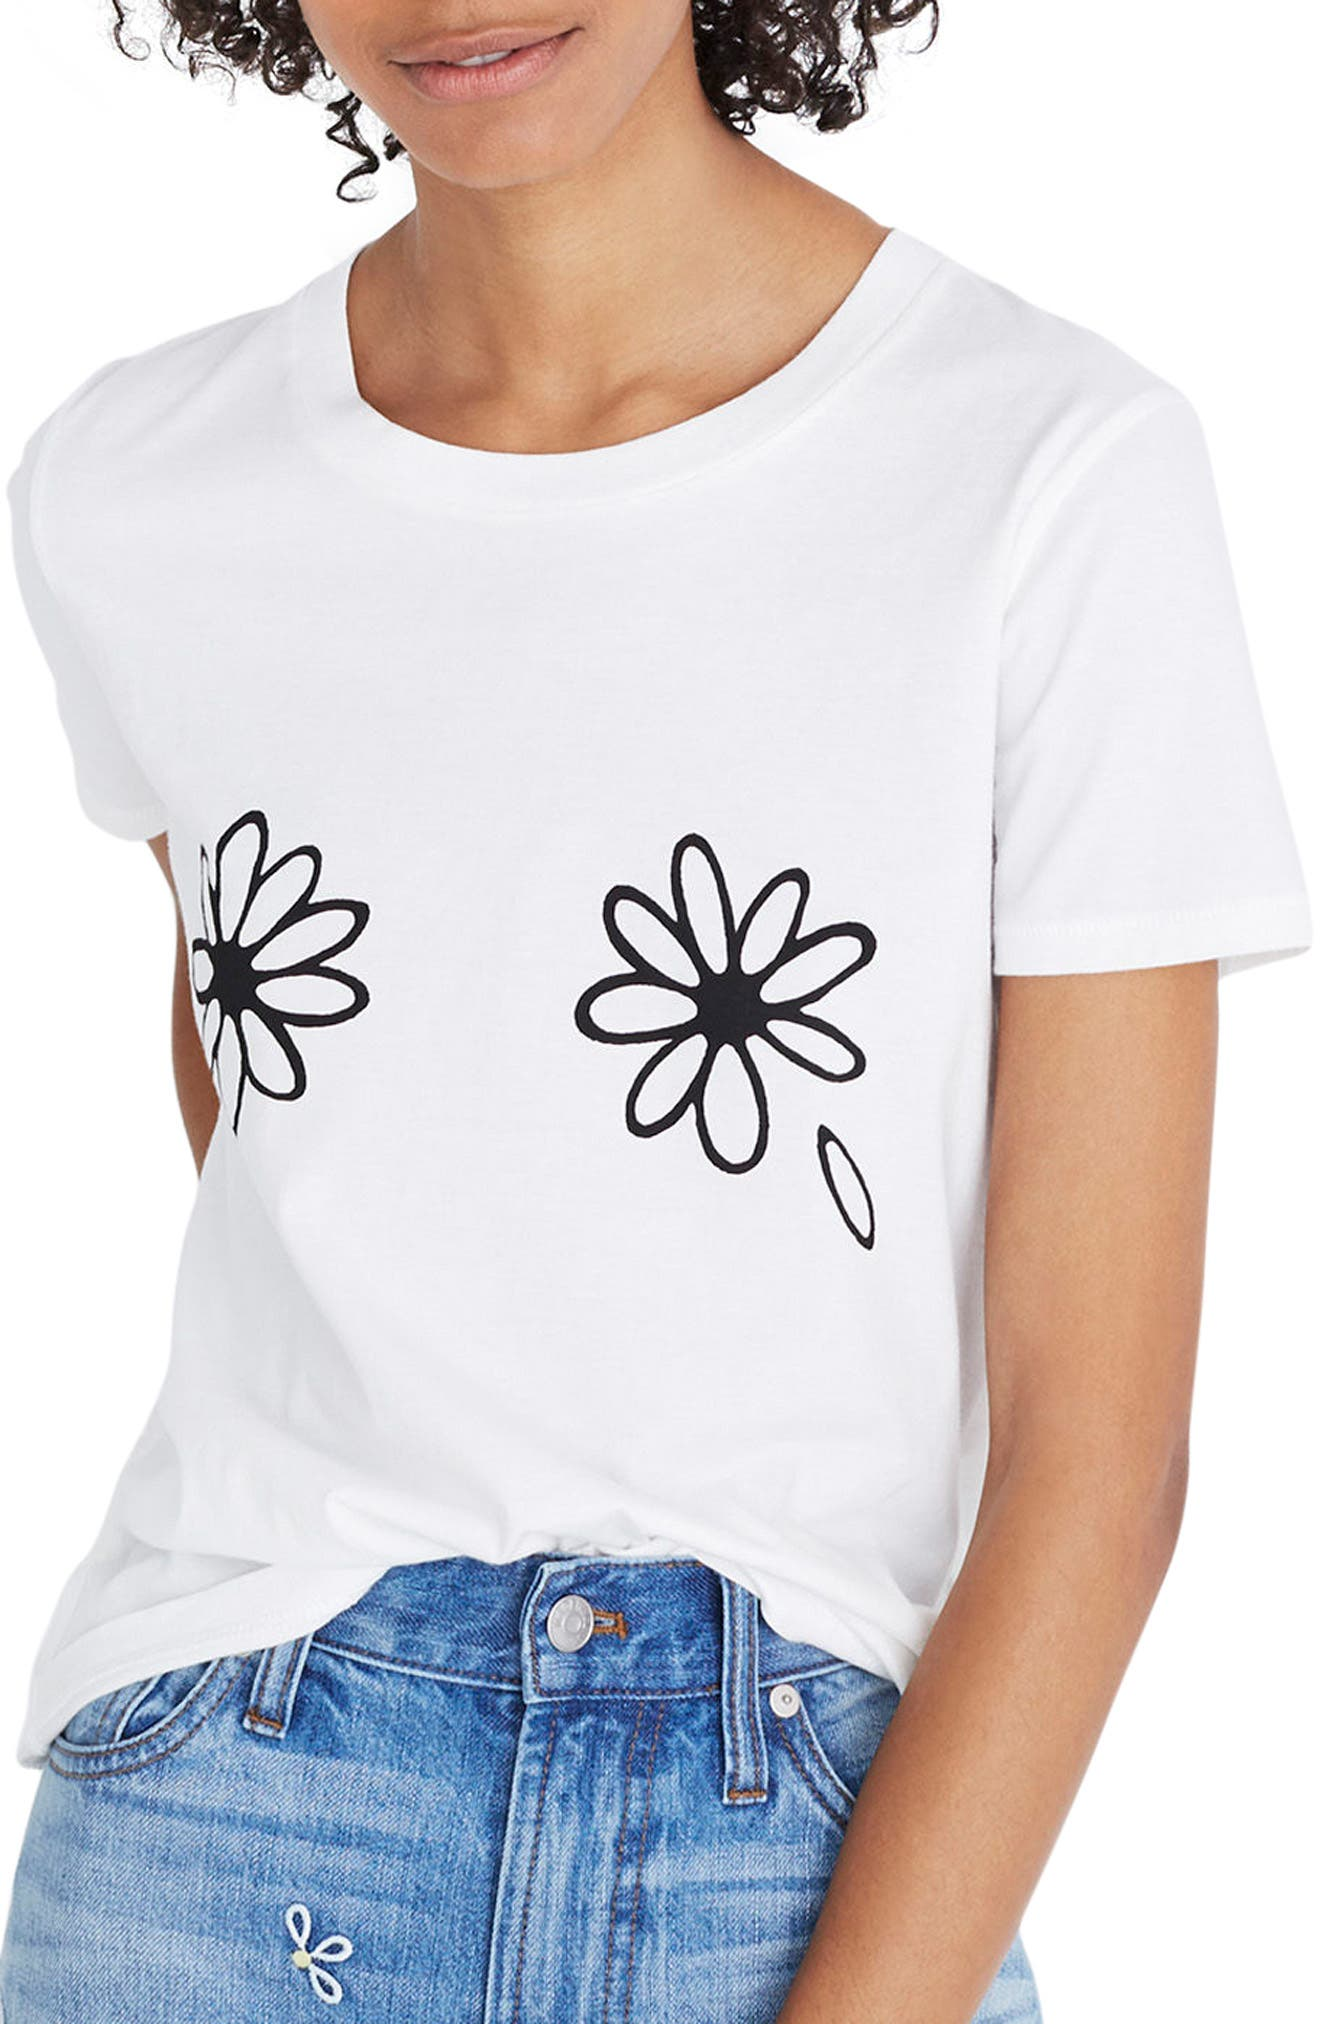 Daisies Graphic Tee,                             Main thumbnail 1, color,                             100